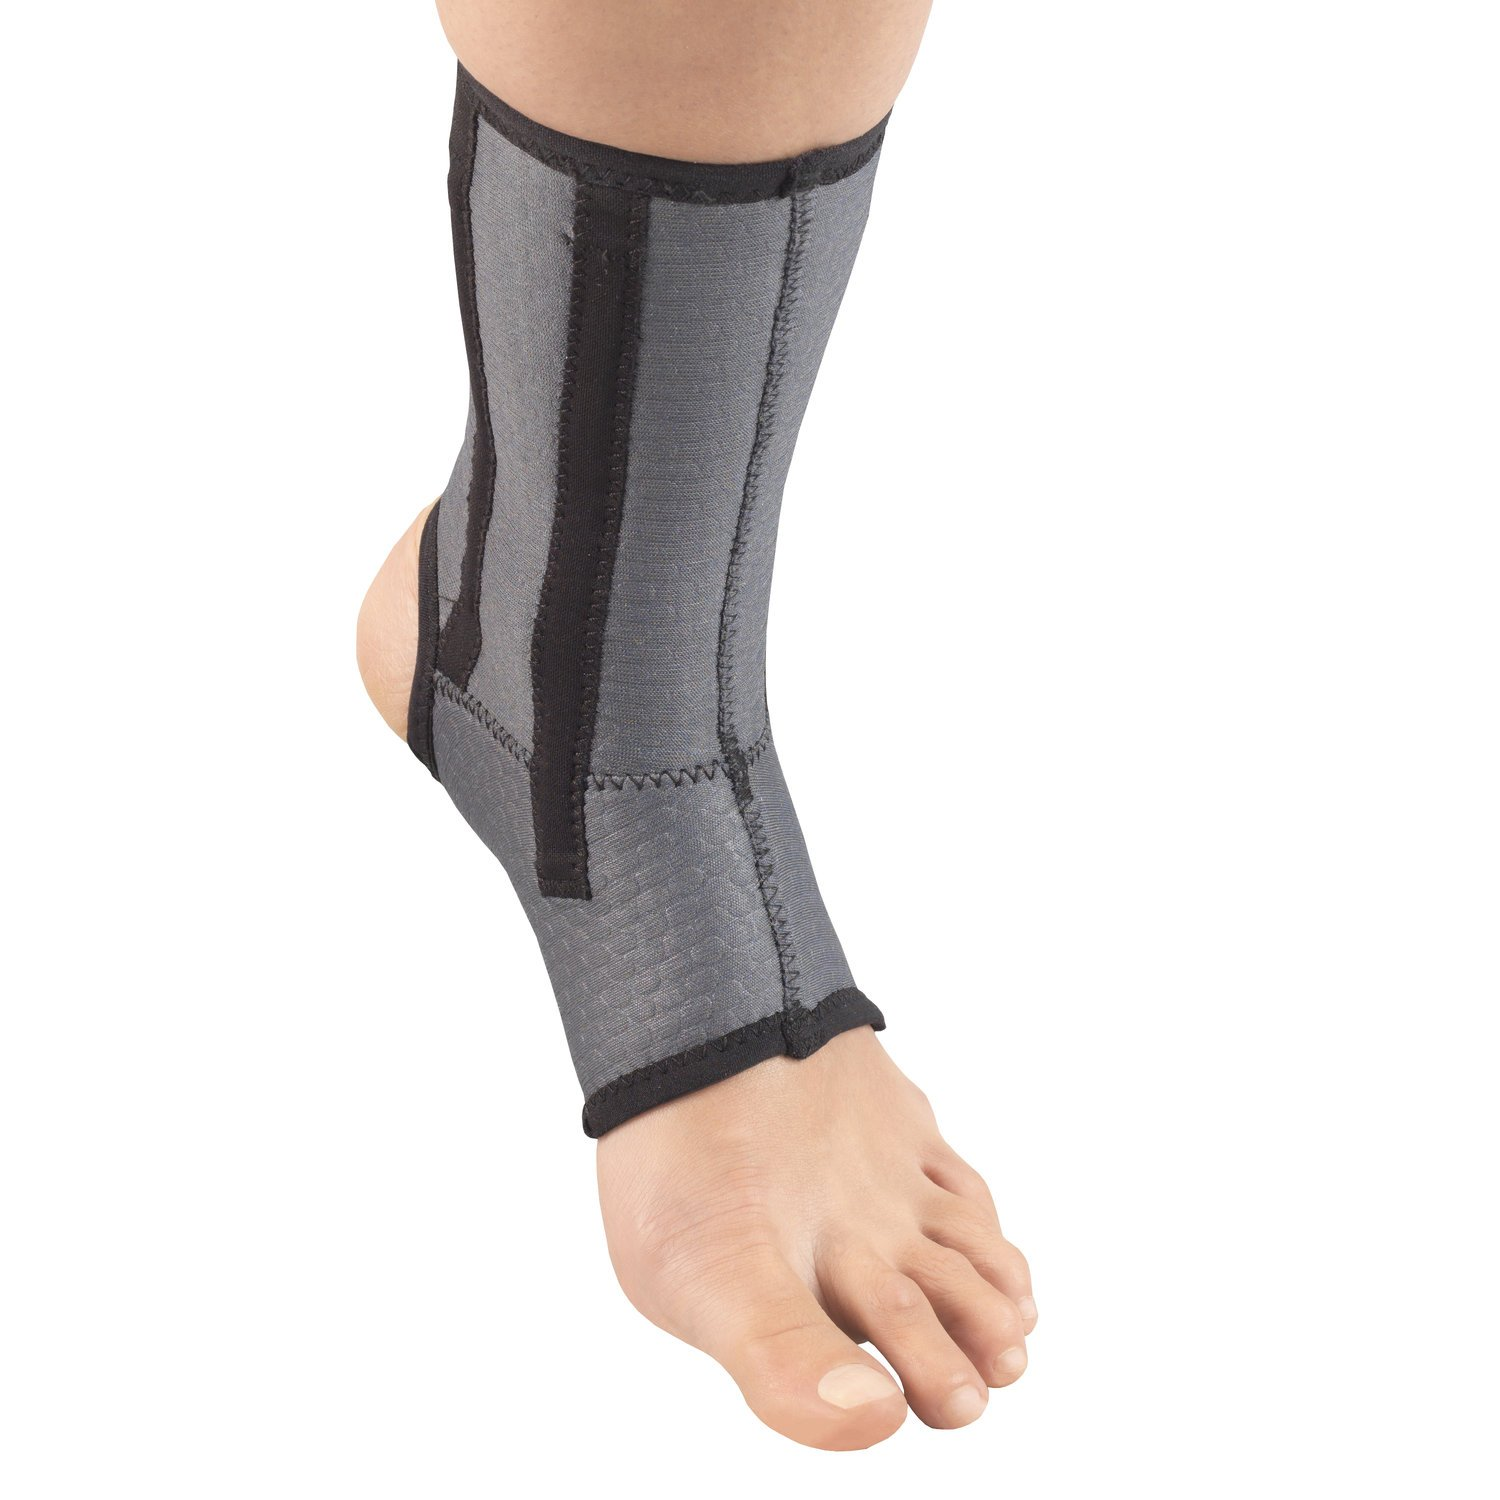 Champion Ankle Brace, Open Heel, Flexible Support Stays, Airmesh Fabric, Grey, Large